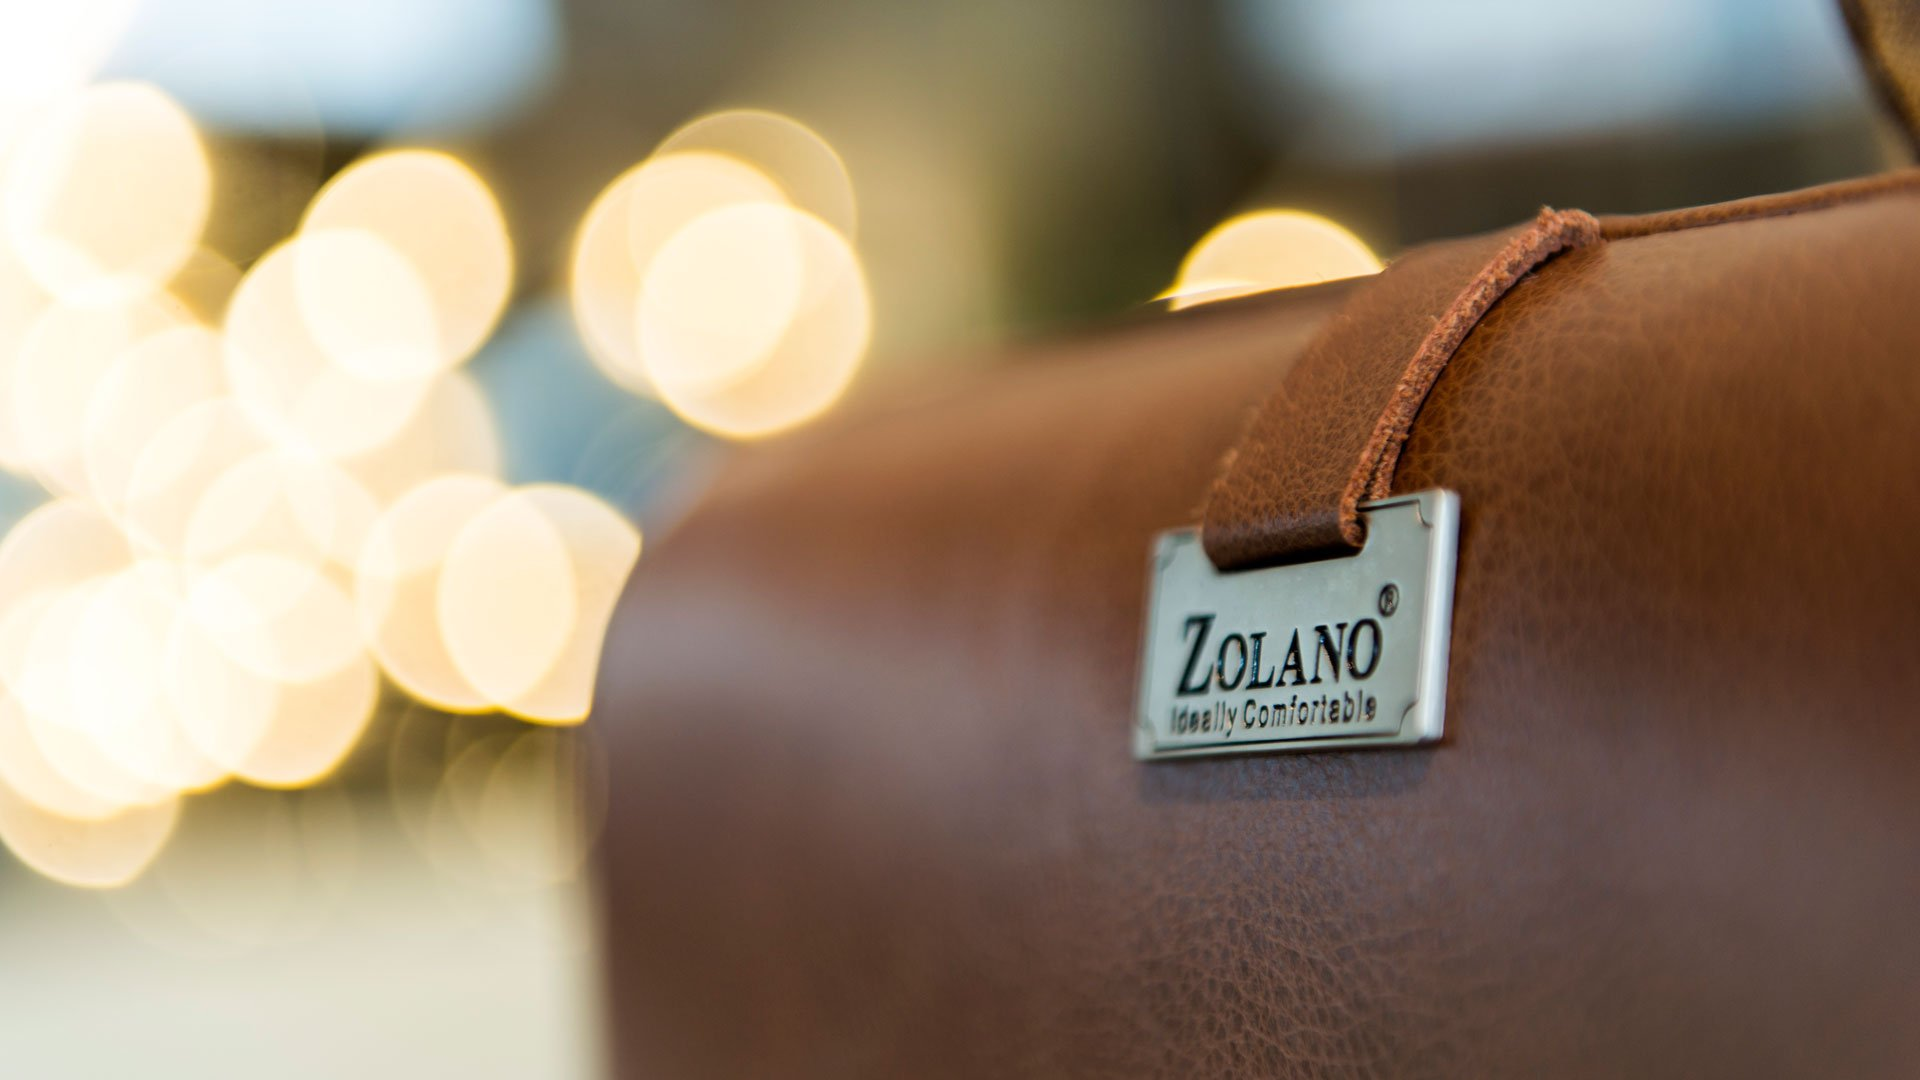 A close-up view of the high-quality Italian leather Zolano uses for the premium sofas.